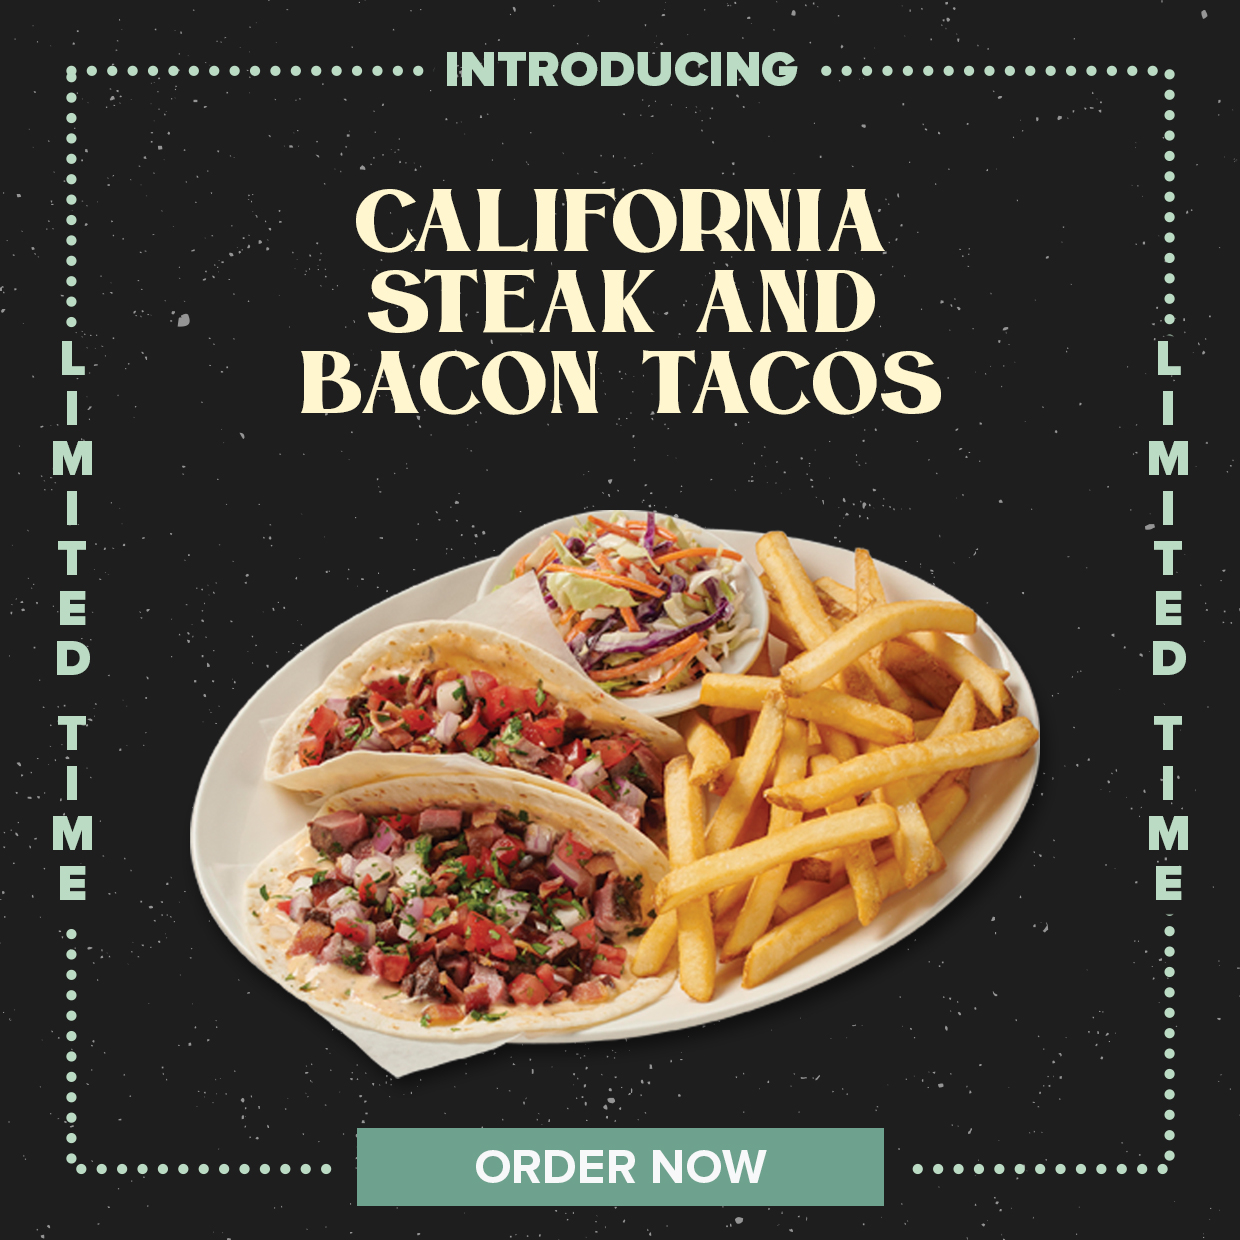 California Steak and Bacon Tacos. Limited Time. Order Now.